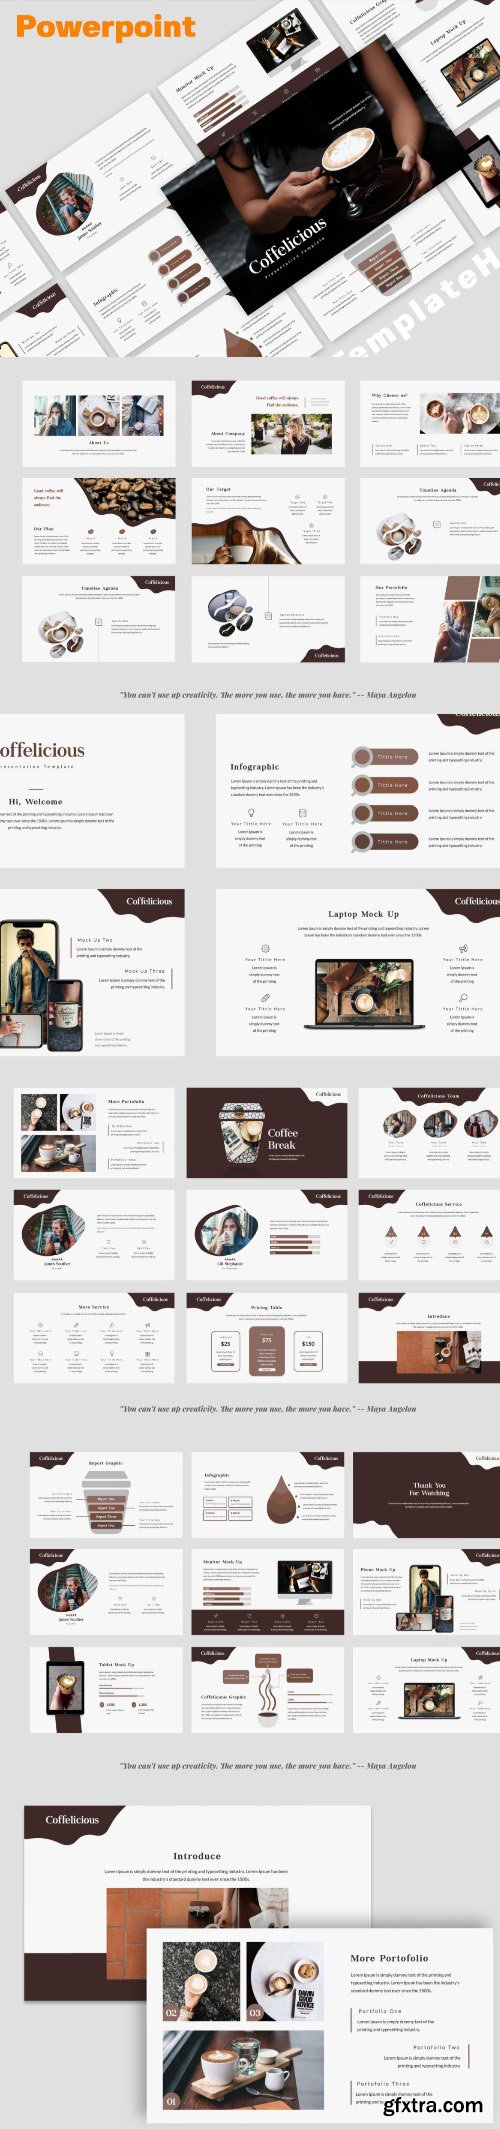 Coffelicious Powerpoint, Keynote and Google Slides Templates